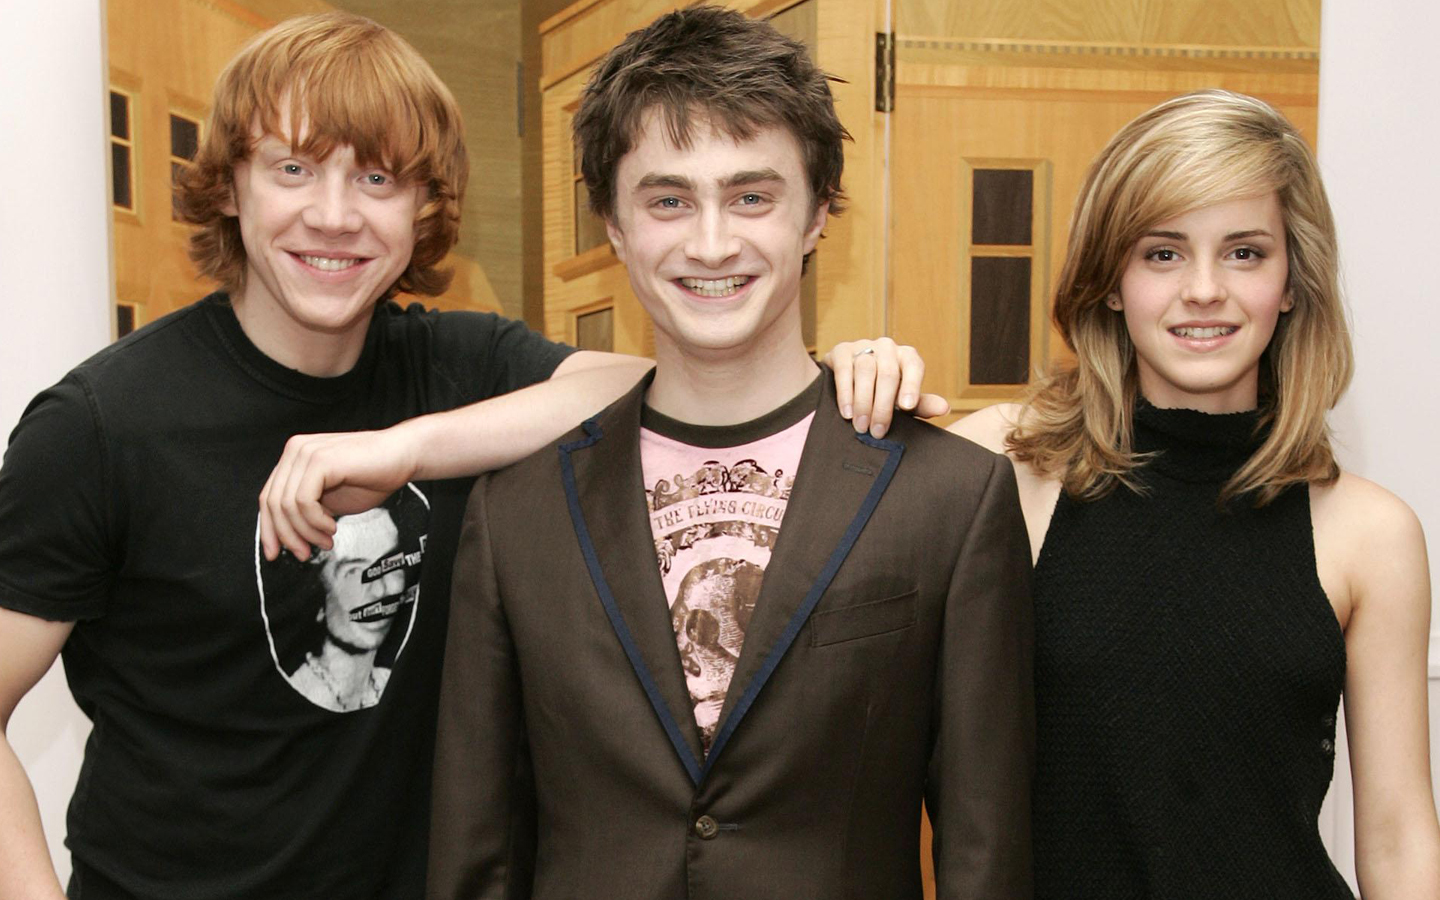 Actores de Harry Potter - 1440x900